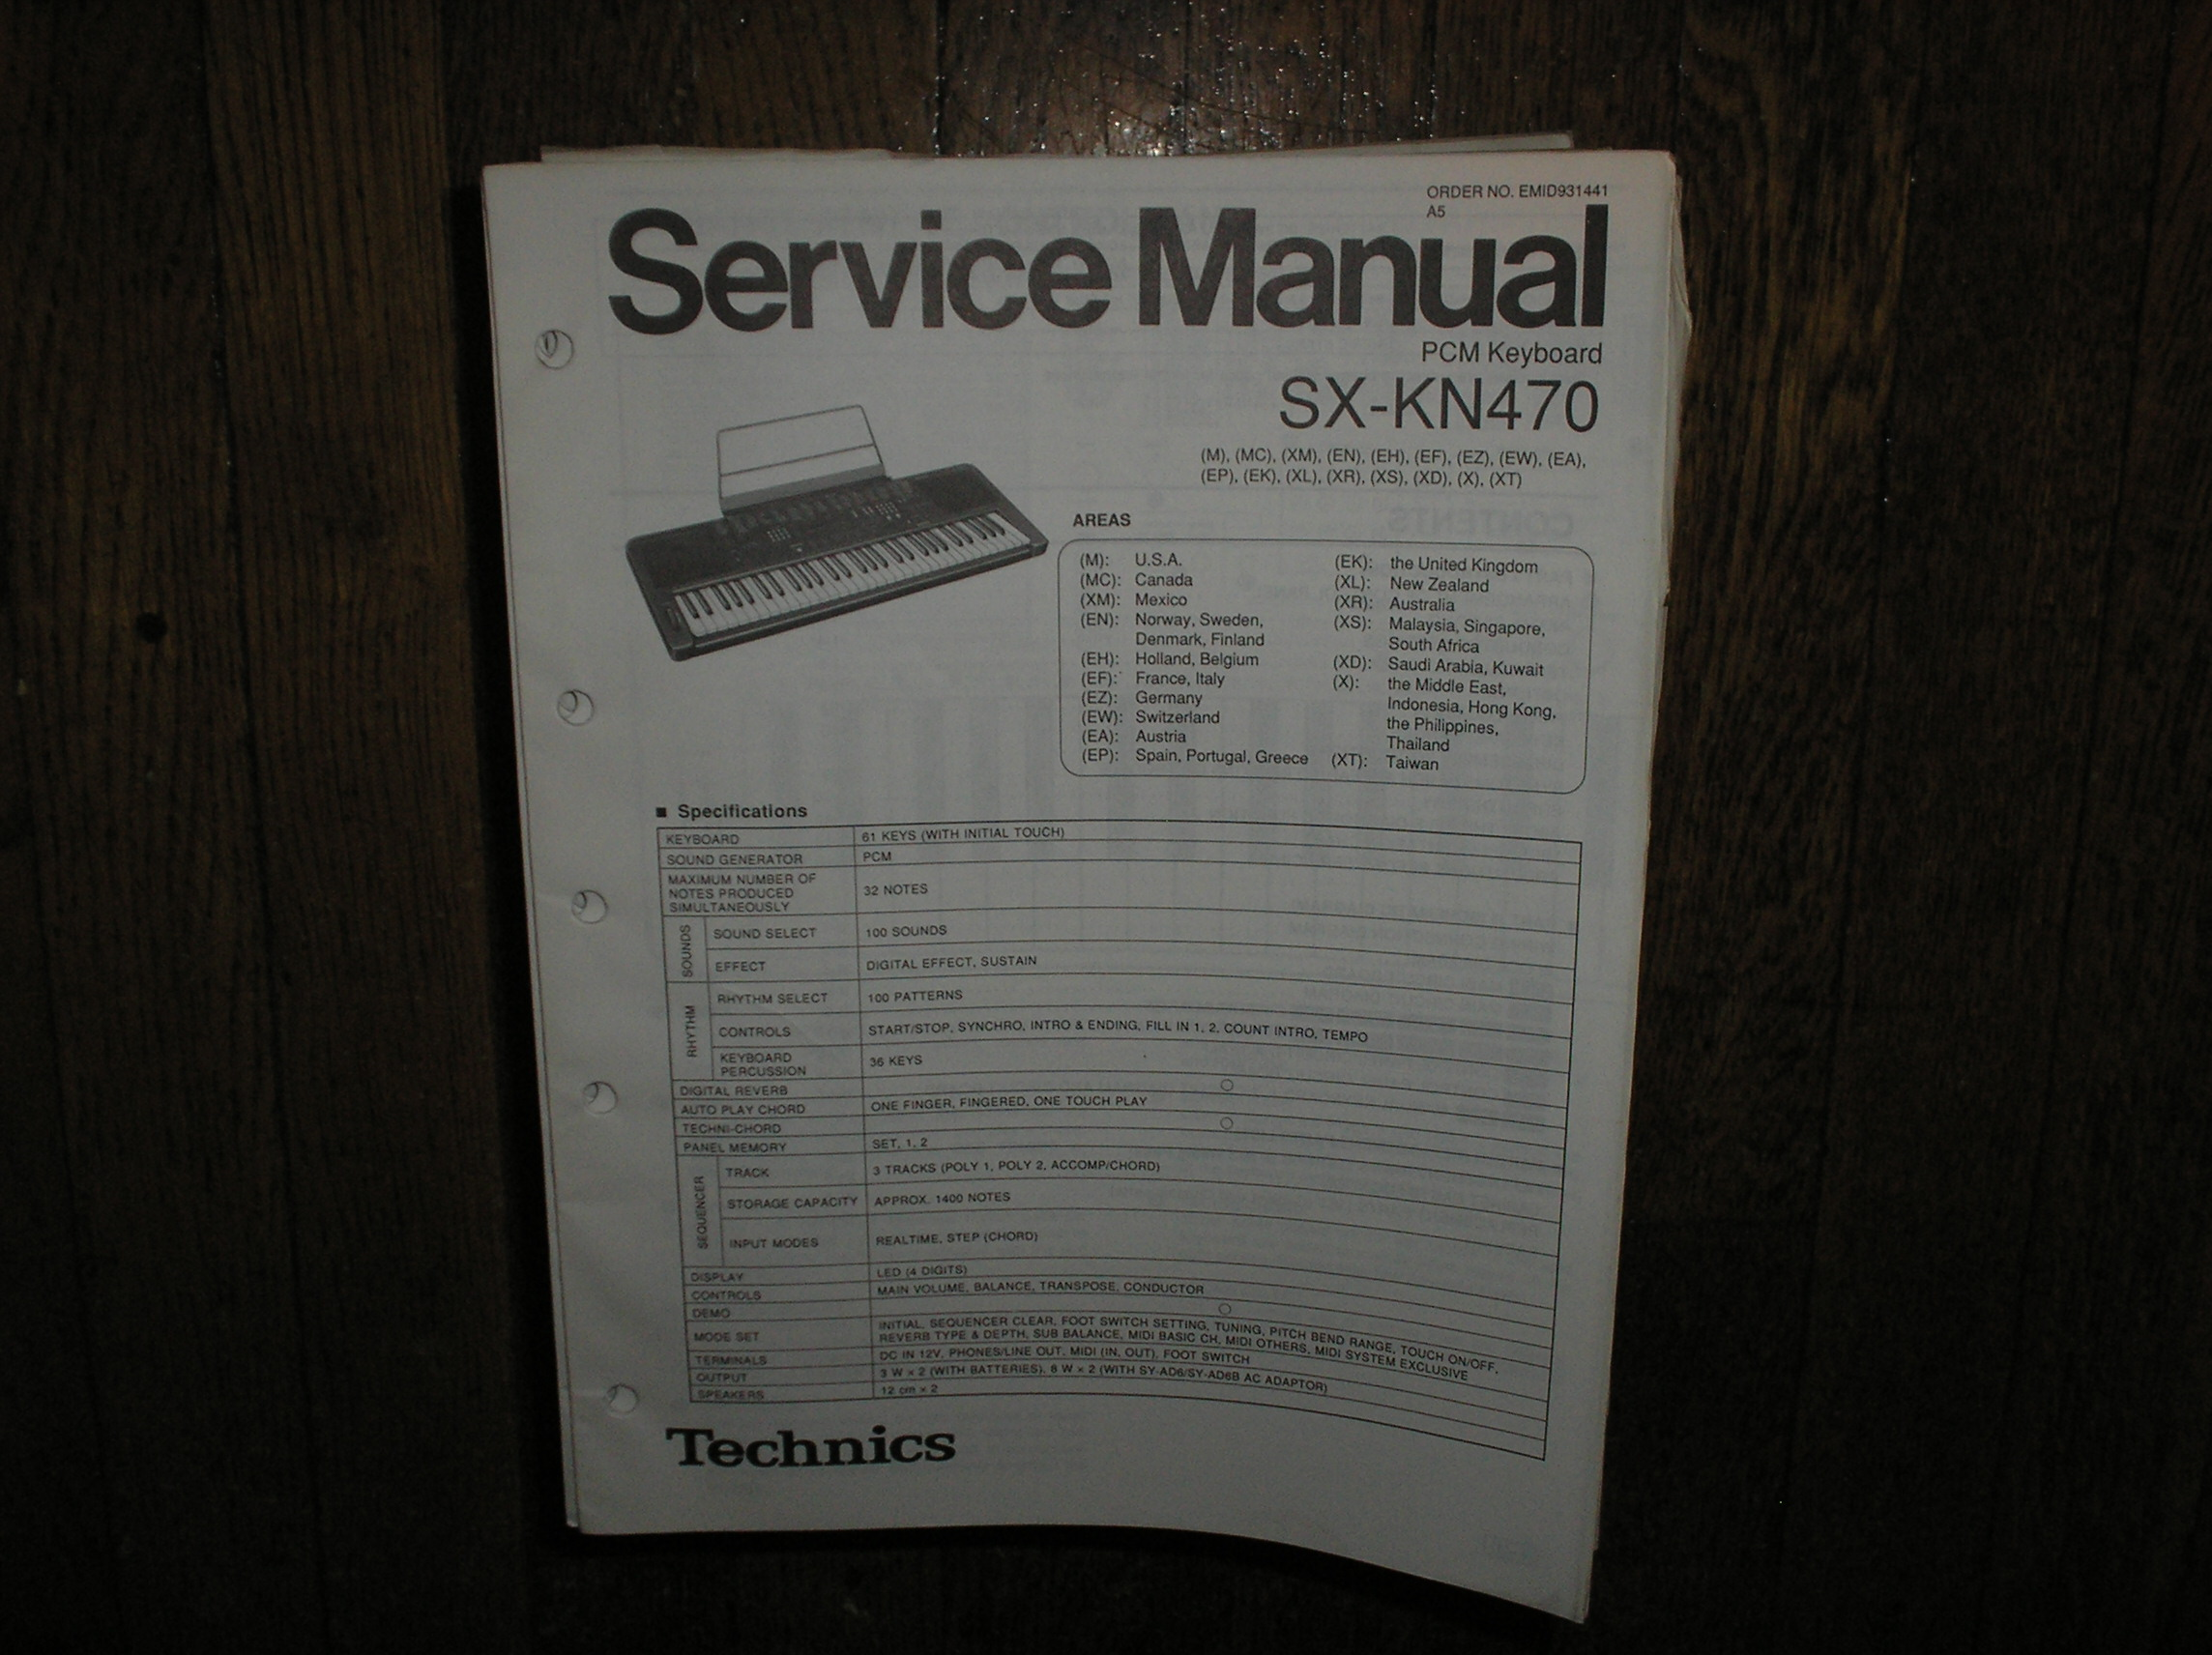 SX-KN470 PCM Keyboard Service Manual